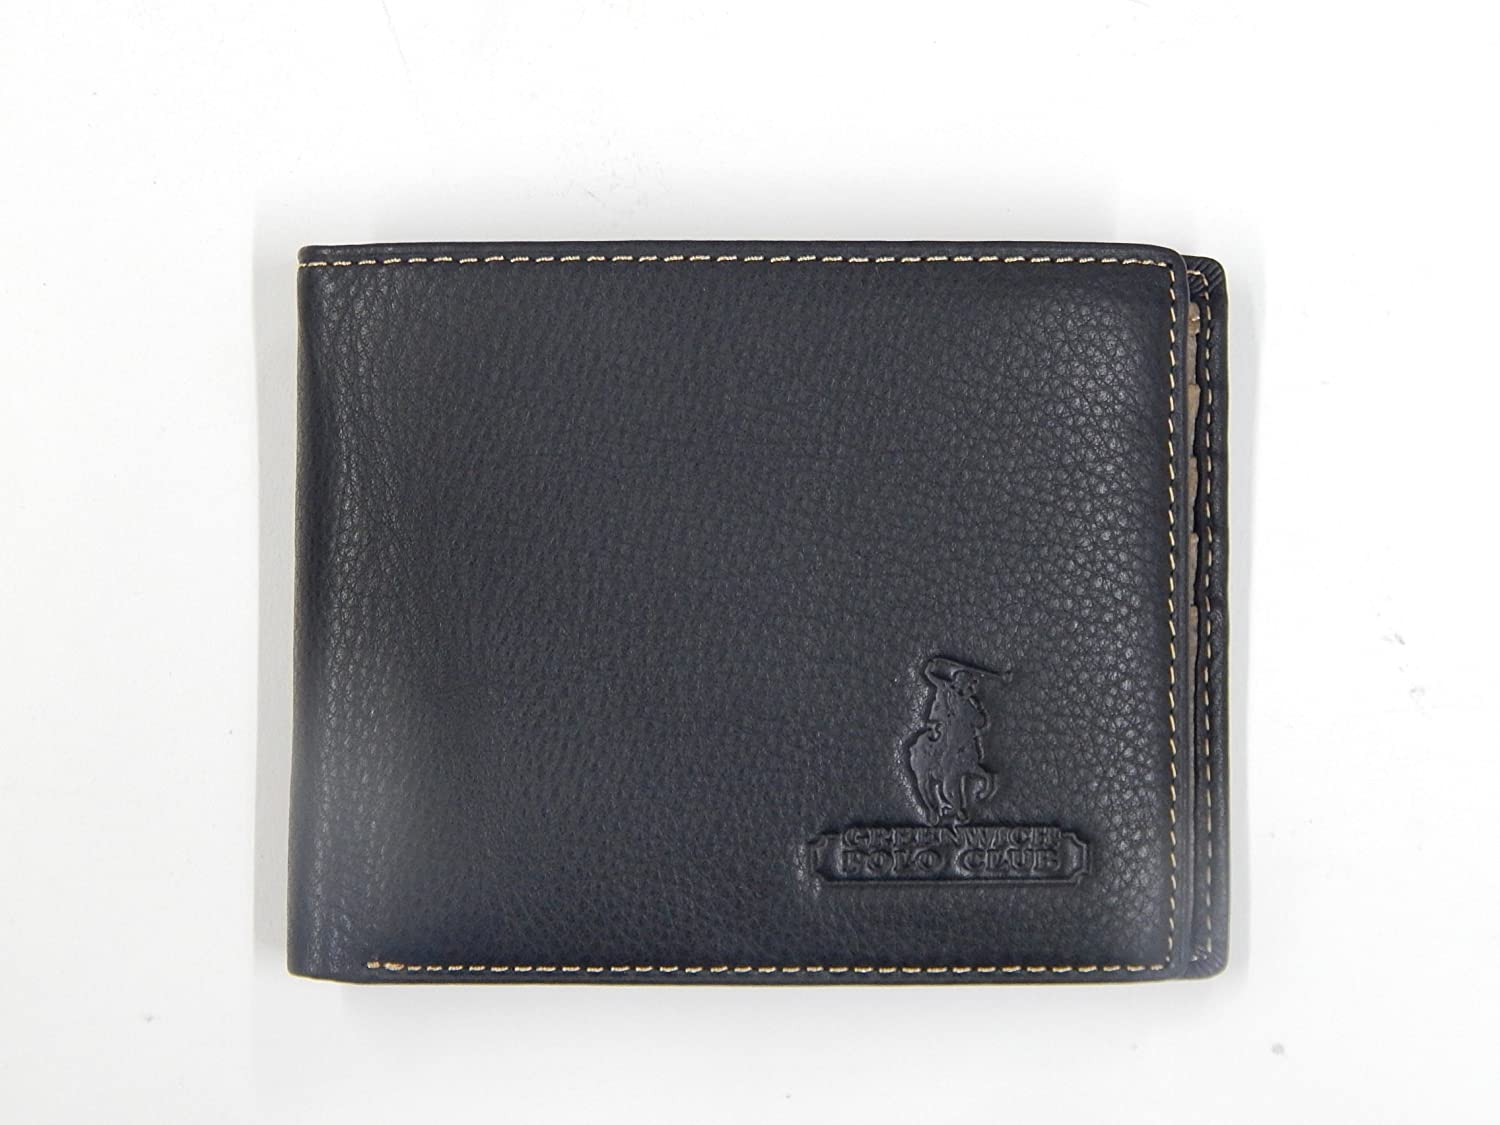 GREENWICH POLO CLUB - Cartera para Hombre Negro Negro: Amazon.es: Equipaje